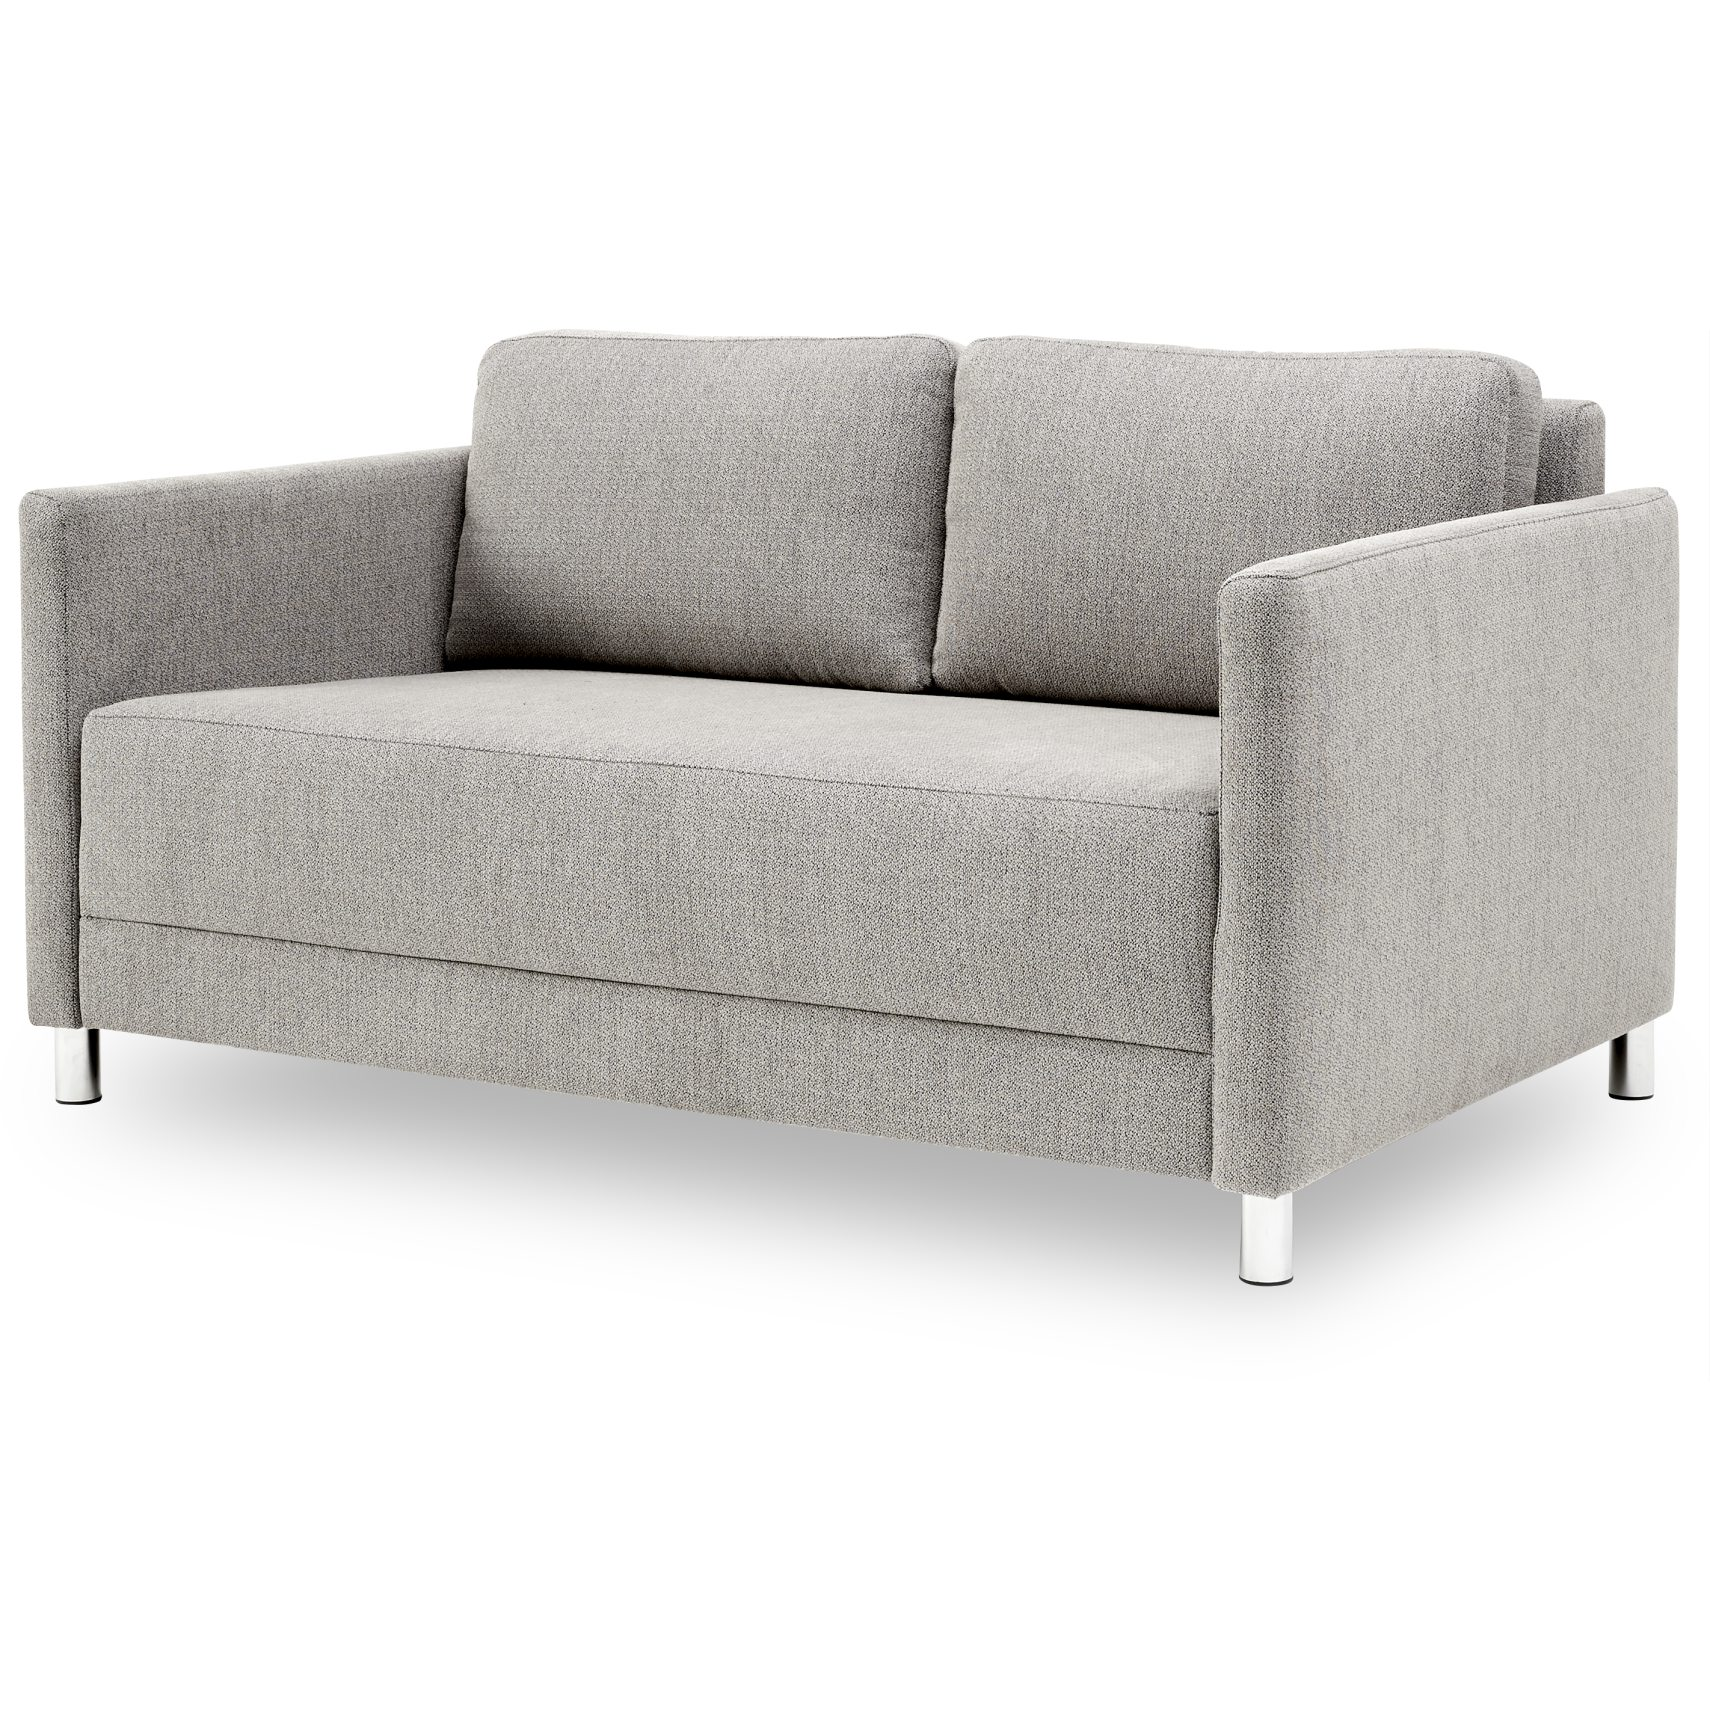 Devon Flex 150 Sovesofa